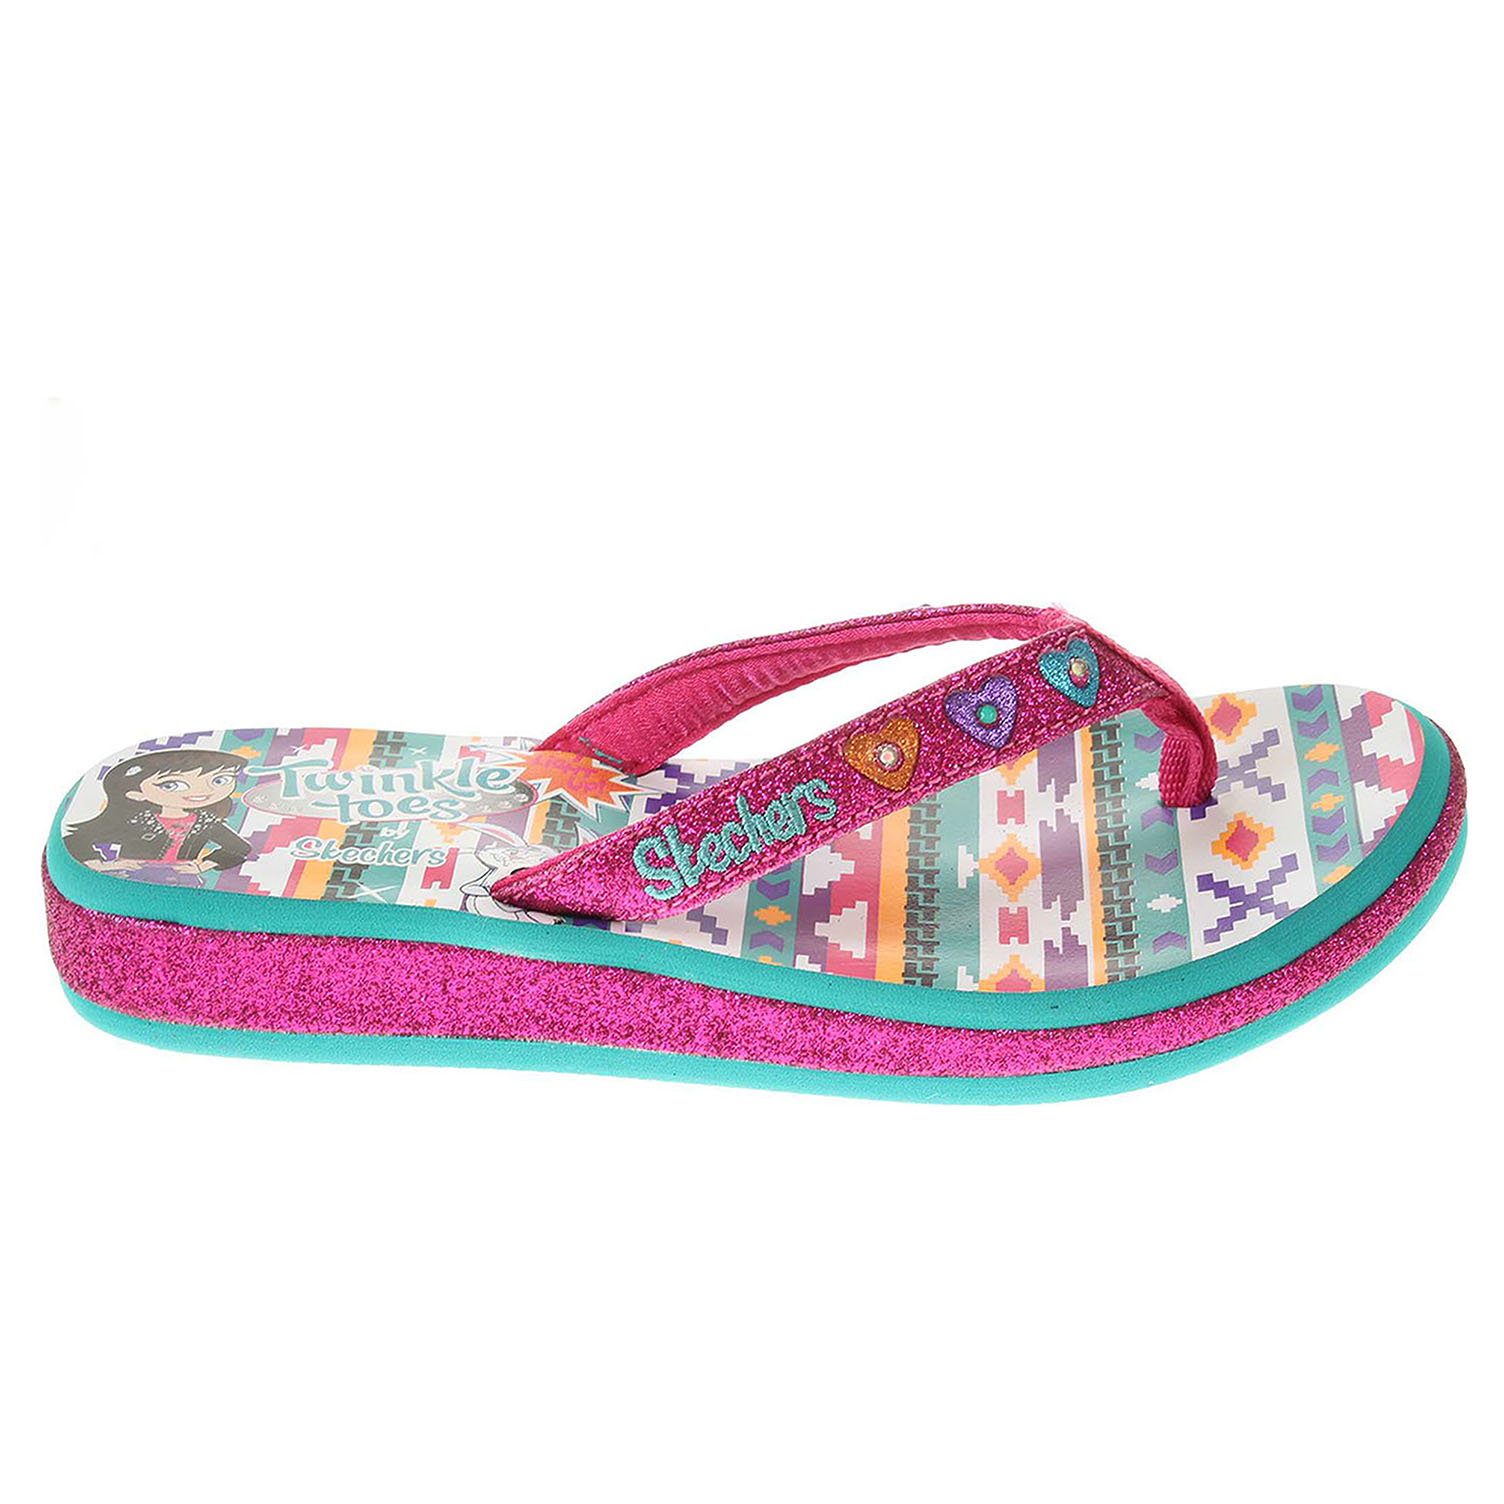 Skechers Summerglow h.pink-aqua